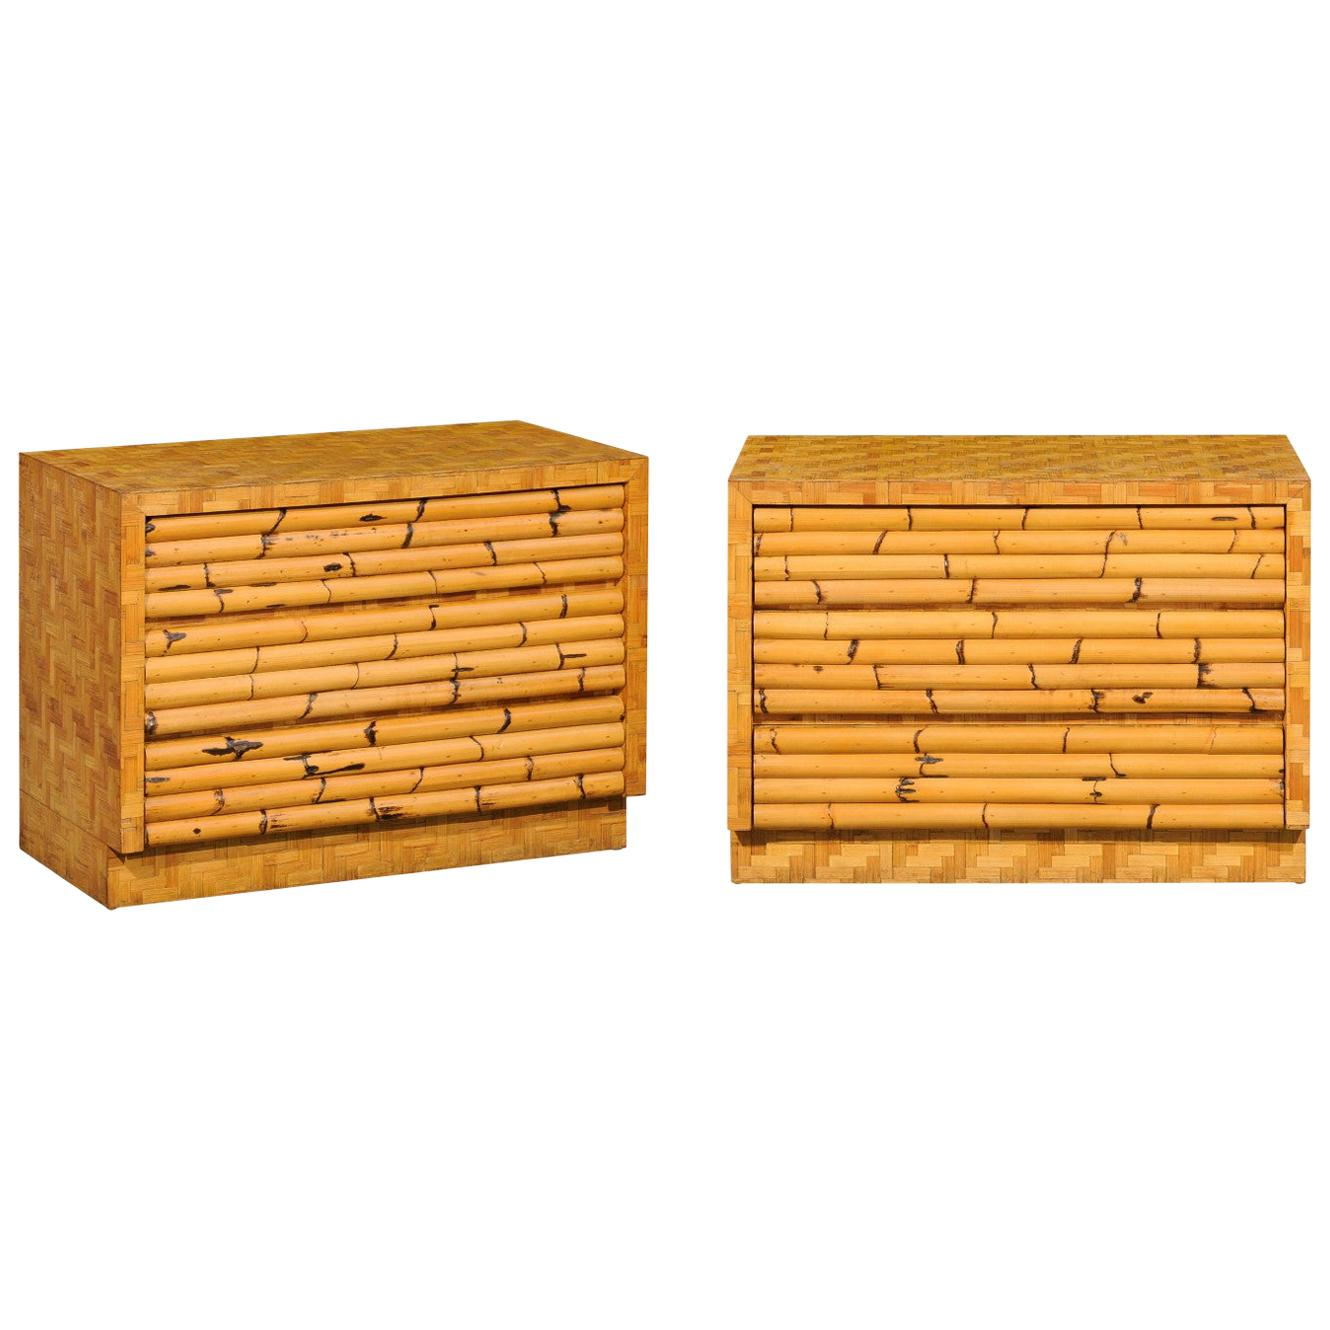 Beautiful Restored Pair of Bamboo and Cane Parquetry Commodes, circa 1975